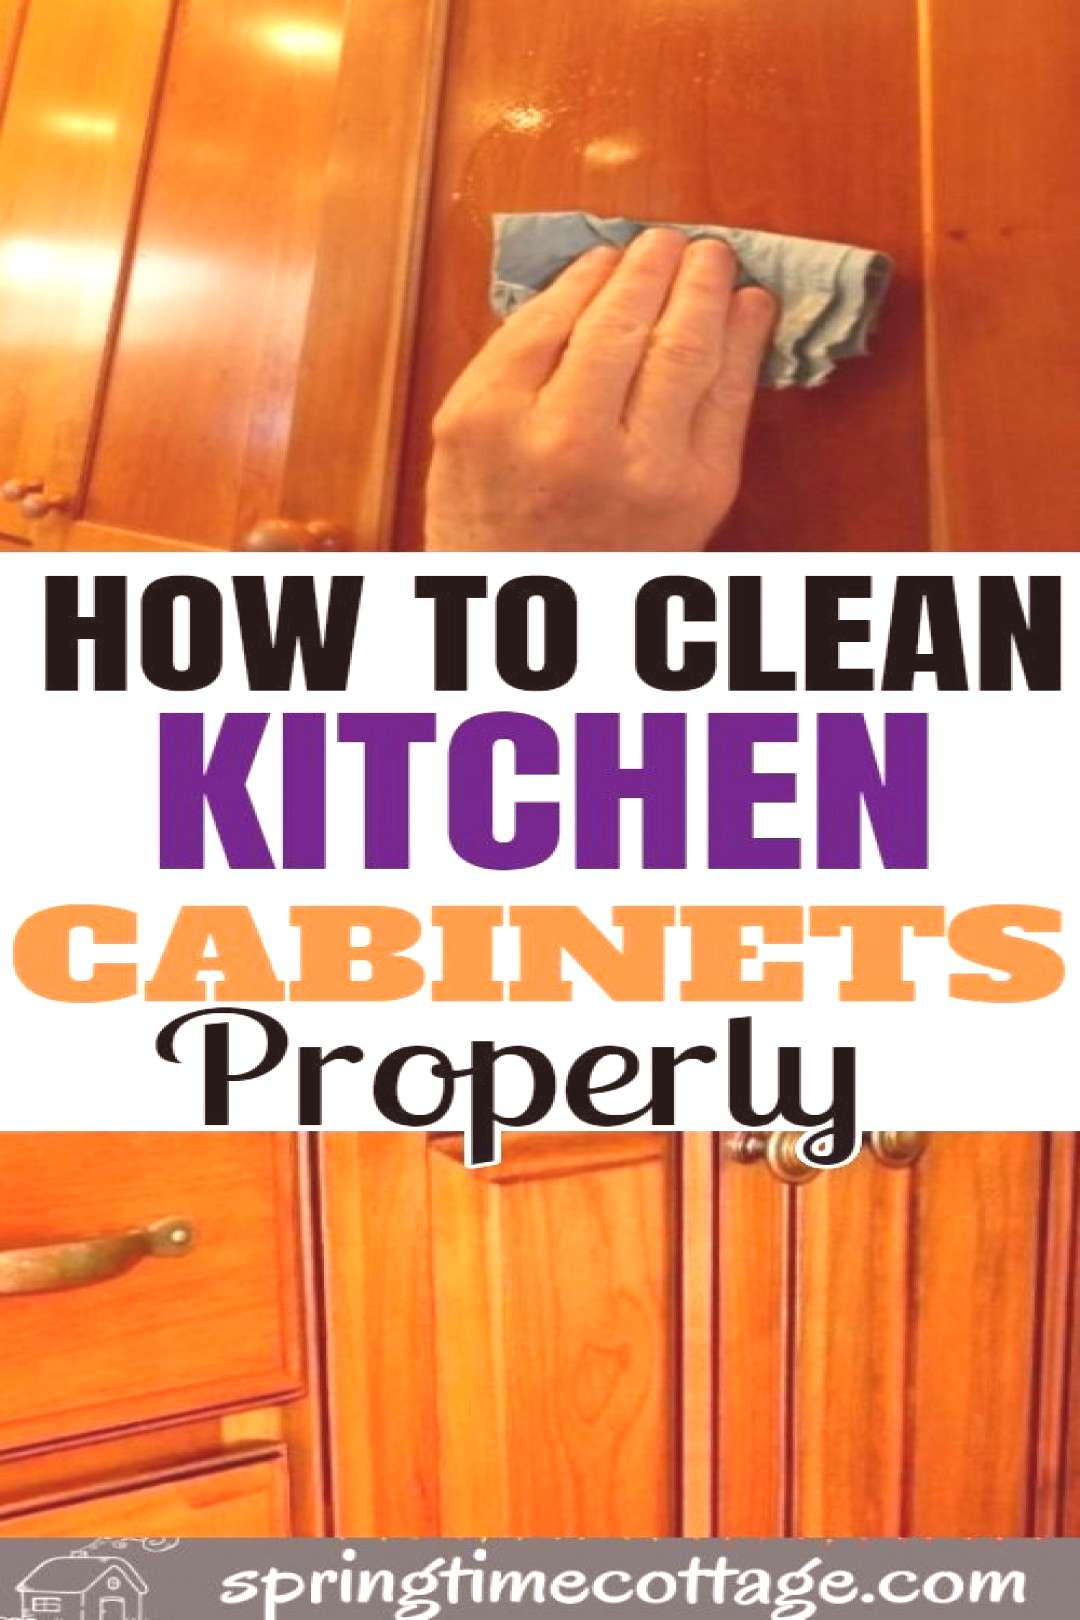 How to properly clean kitchen cabinets How to properly clean kitchen cabinets,